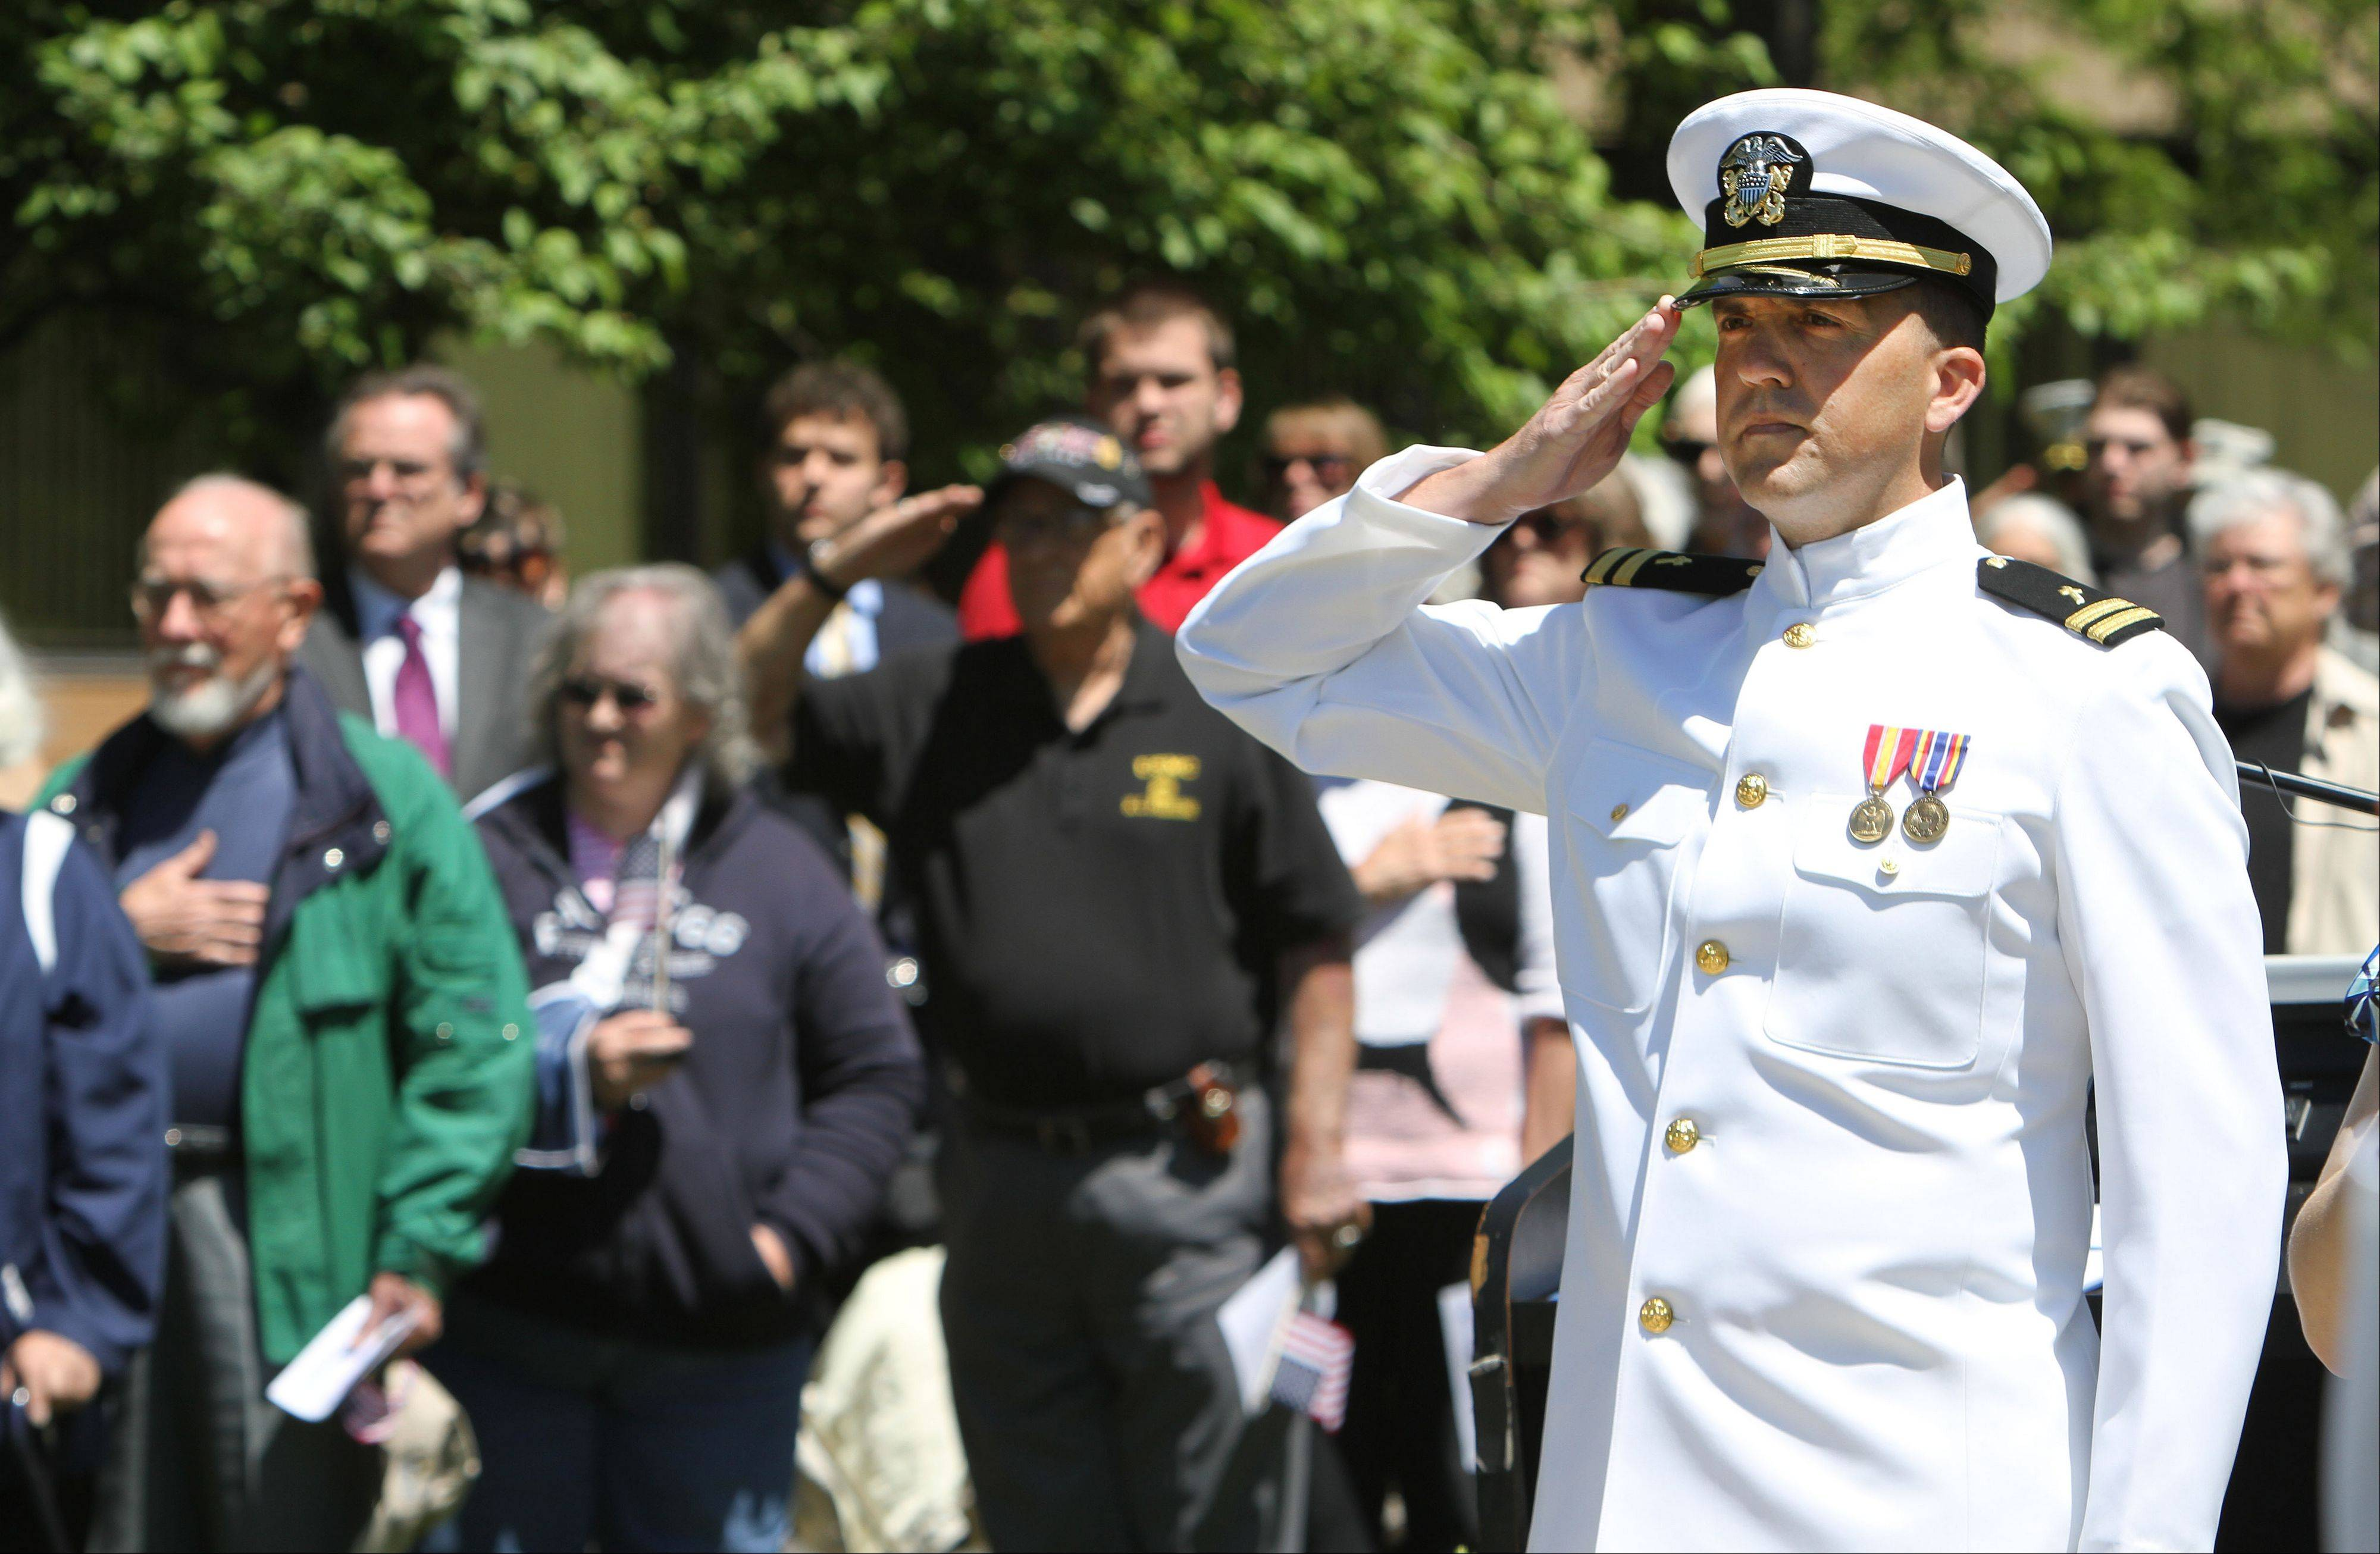 Navy Lt. William Butt salutes during the national anthem Friday at the sixth annual Memorial Day ceremony at the College of Lake County in Grayslake.